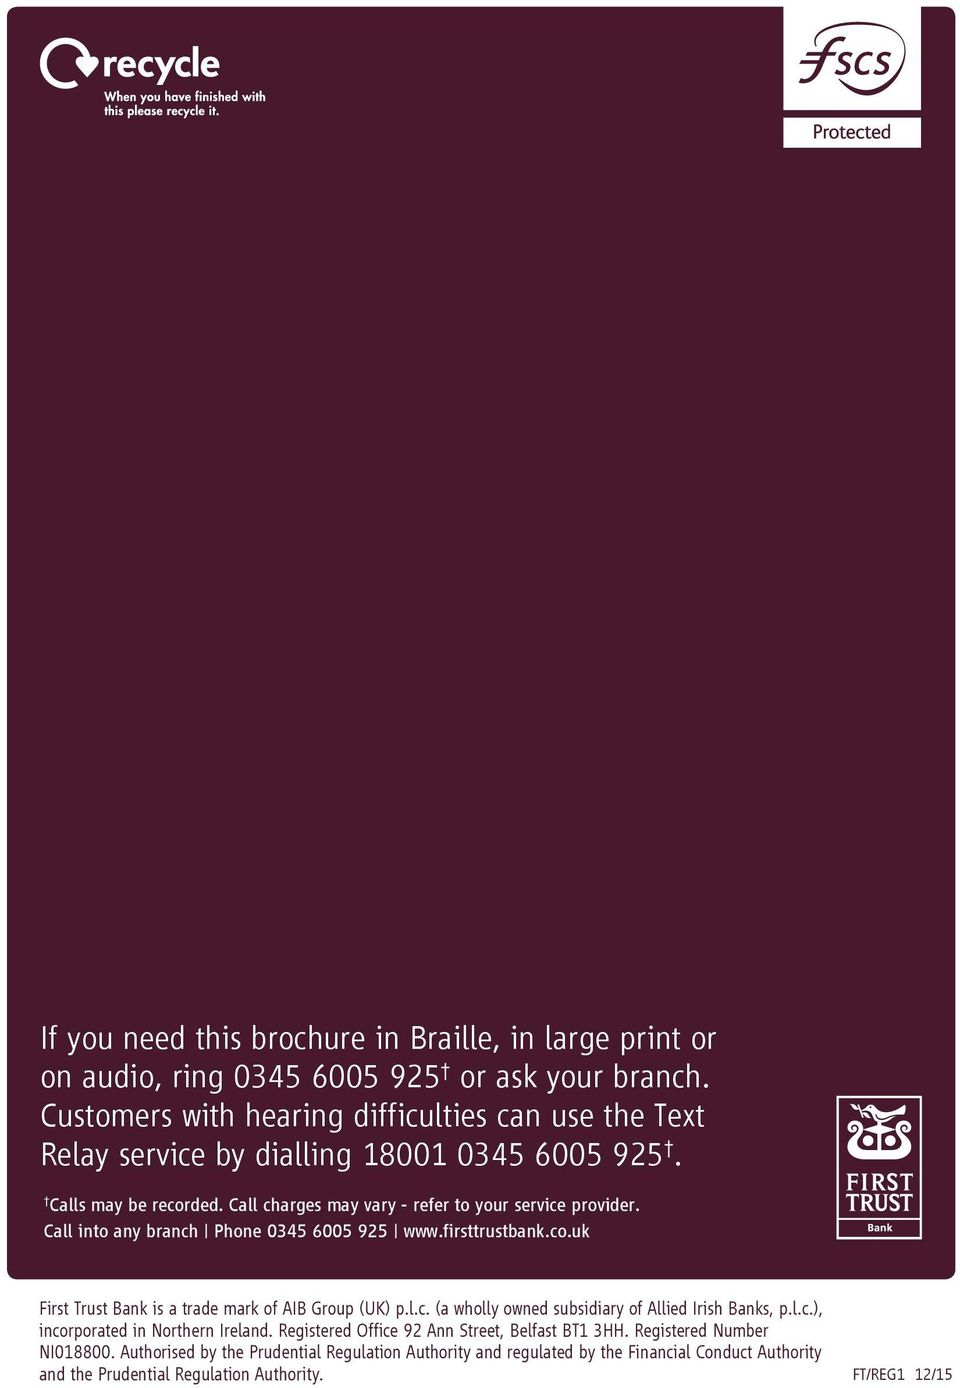 Call into any branch Phone 0345 6005 925 www.firsttrustbank.co.uk First Trust Bank is a trade mark of AIB Group (UK) p.l.c. (a wholly owned subsidiary of Allied Irish Banks, p.l.c.), incorporated in Northern Ireland.